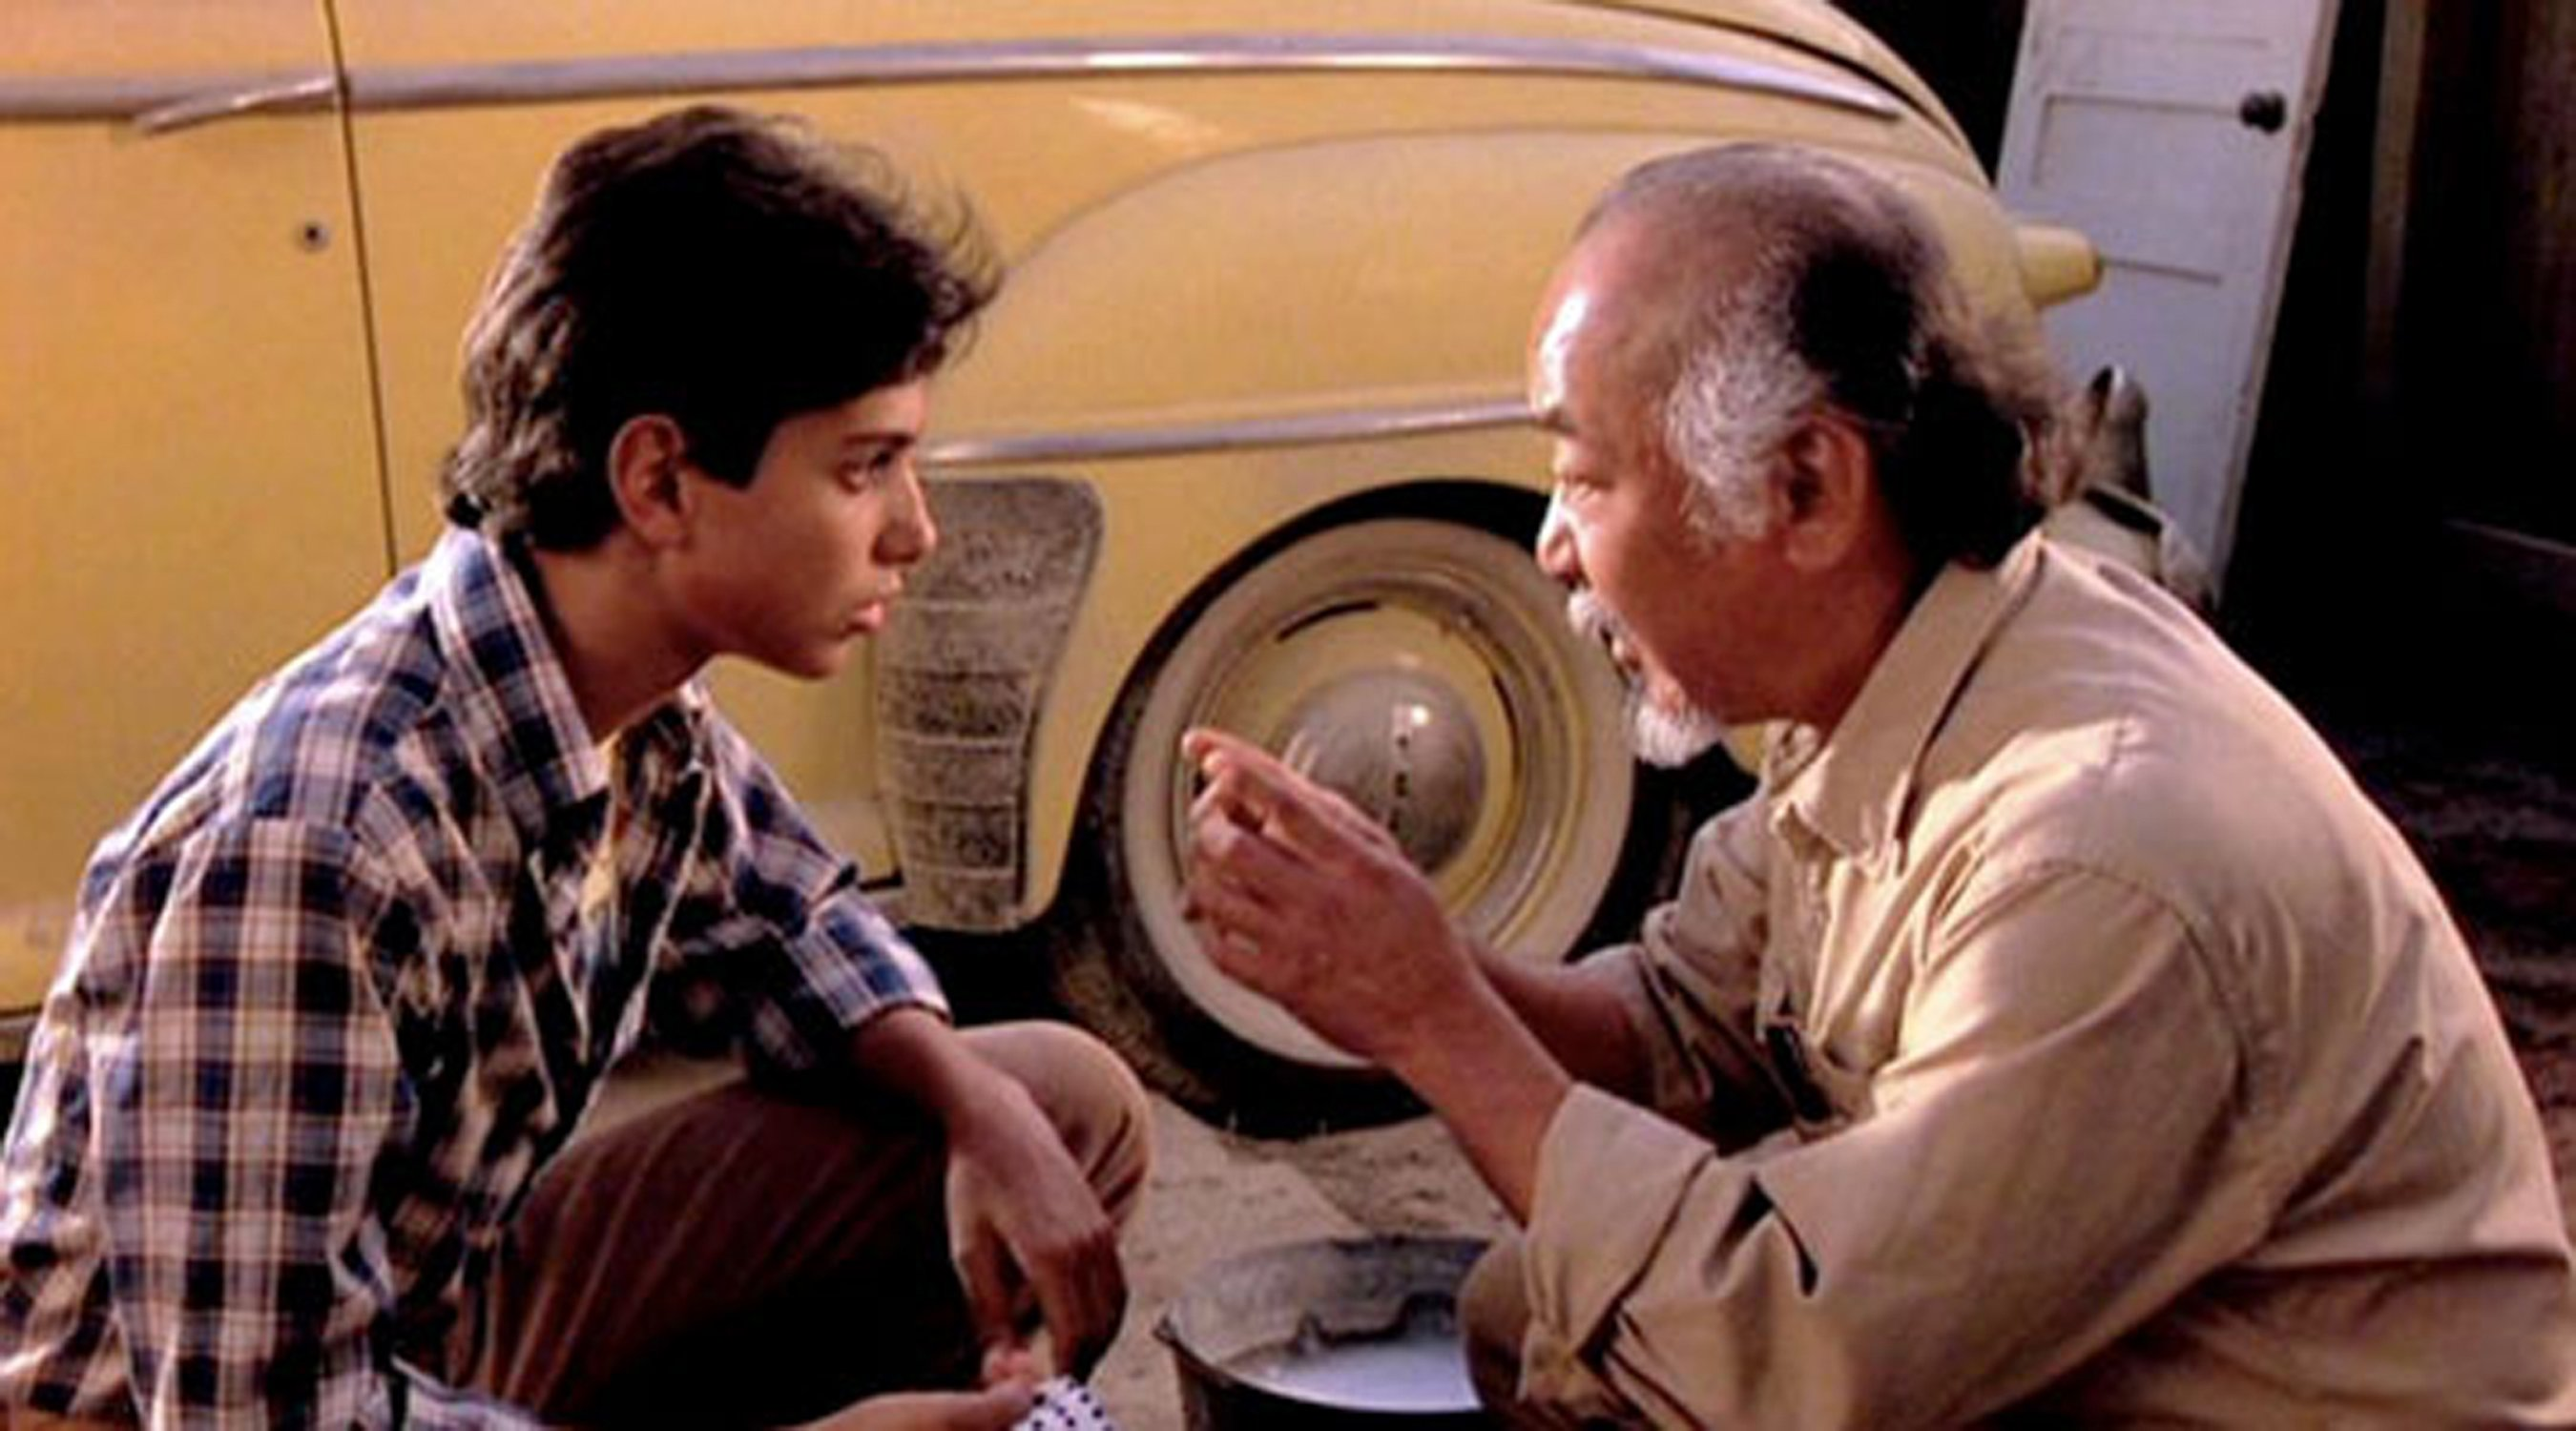 Mr. Miyagi (Pat Morita) assigns Daniel (Ralph Macchio) to unrelated chores in The Karate Kid, 1984 (Columbia Pictures)